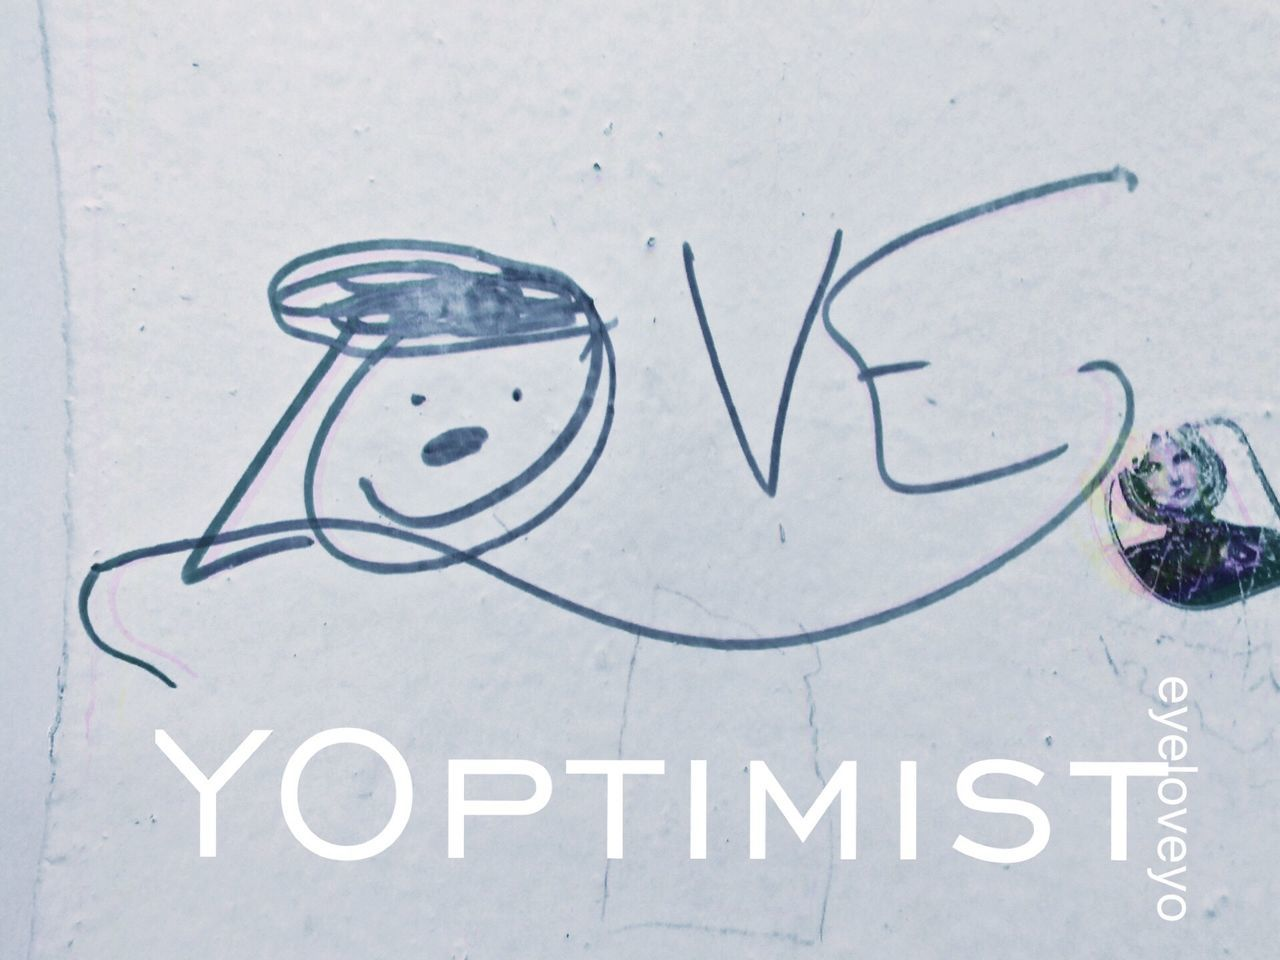 happyMonkeYear YOptimist #YoWALKINGlightOnWATERpower #eyeloveyo #JAC5ive